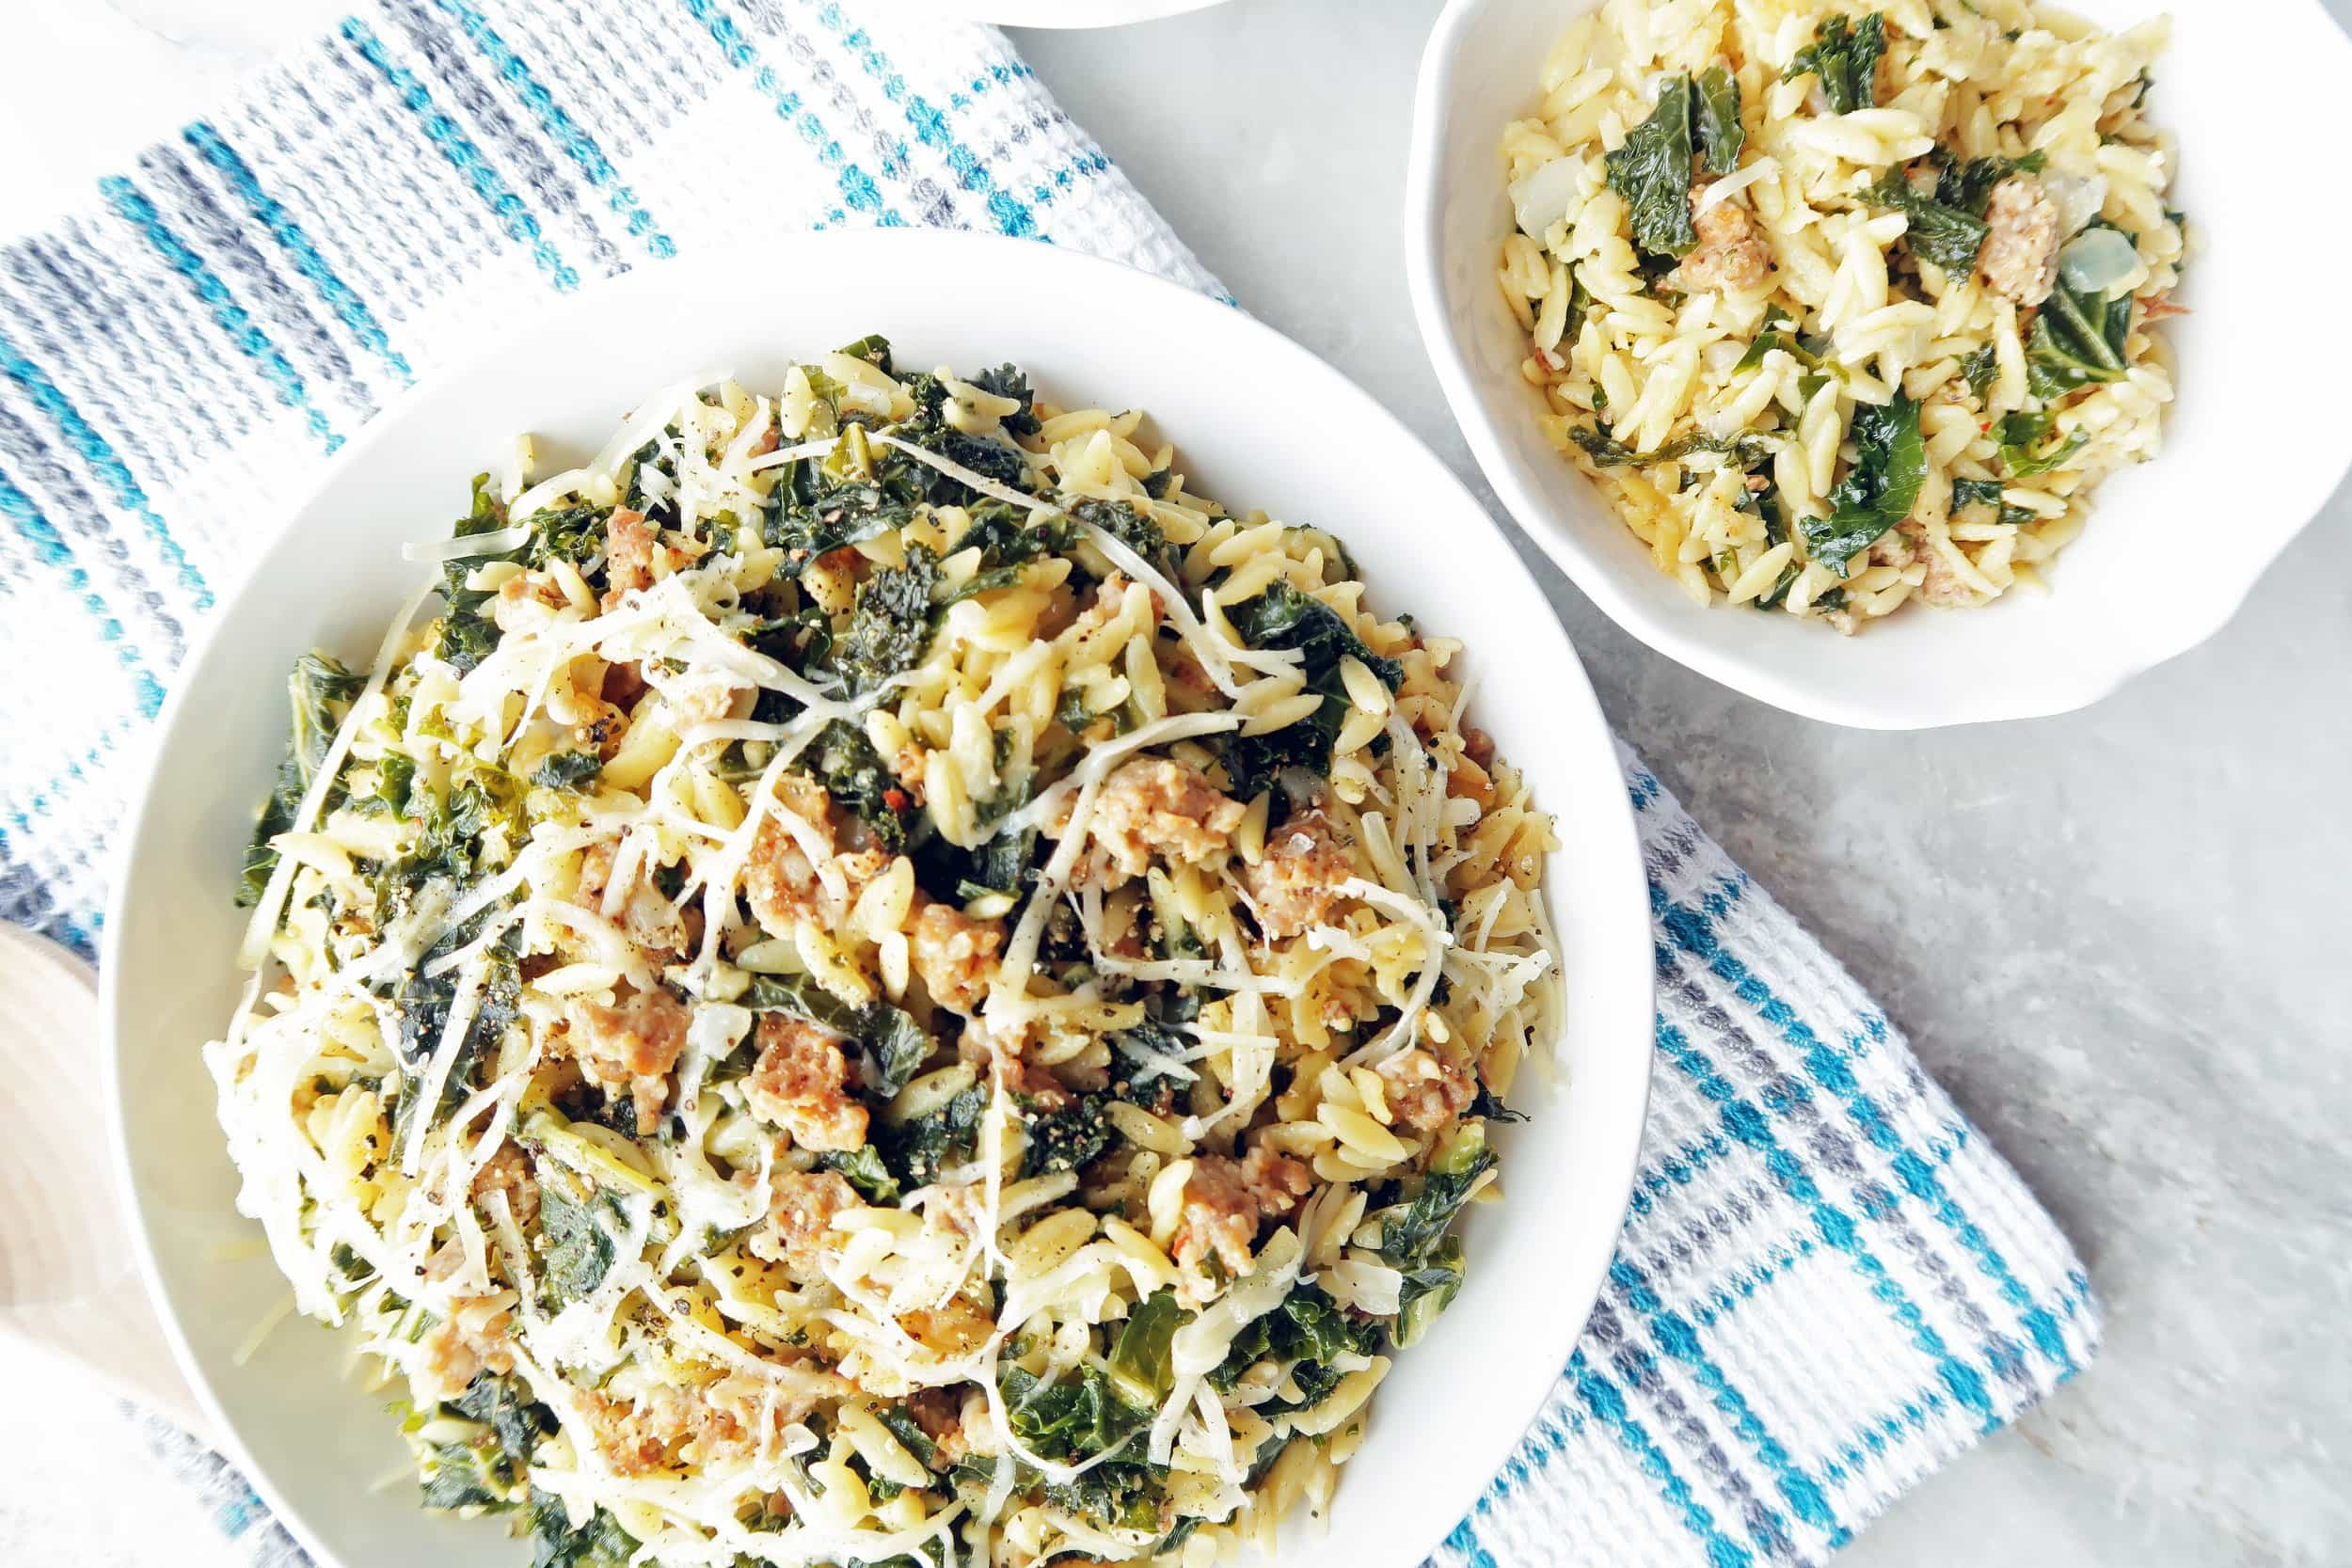 Orzo pasta with Italian sausage and kale in a large pasta bowl and in a small bowl.